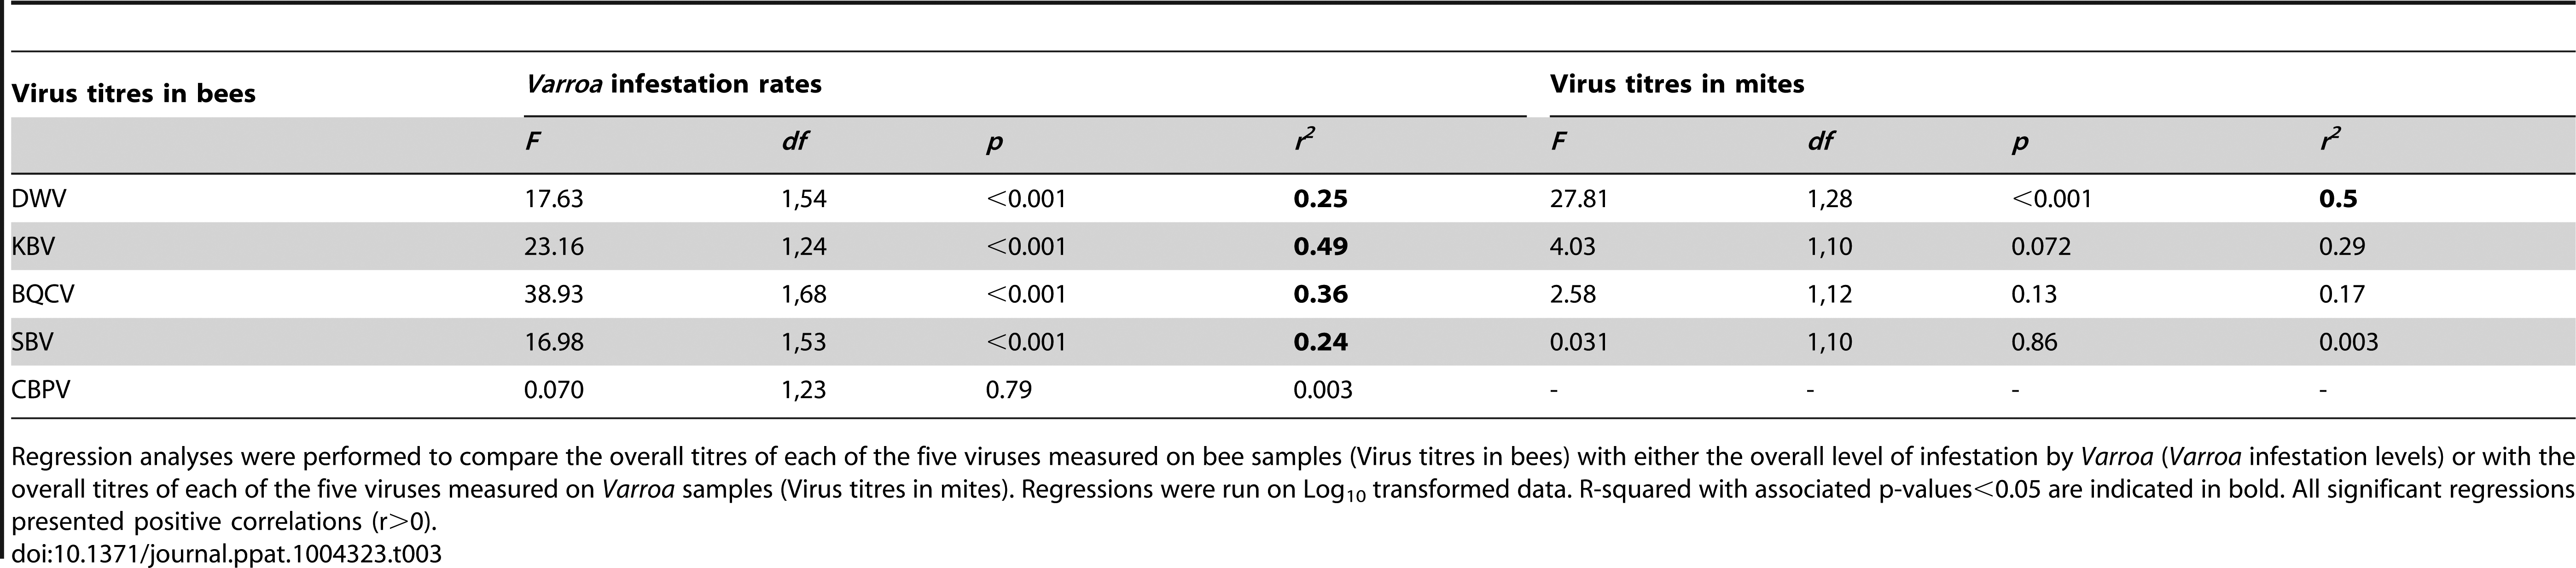 Results of the regression analyses.